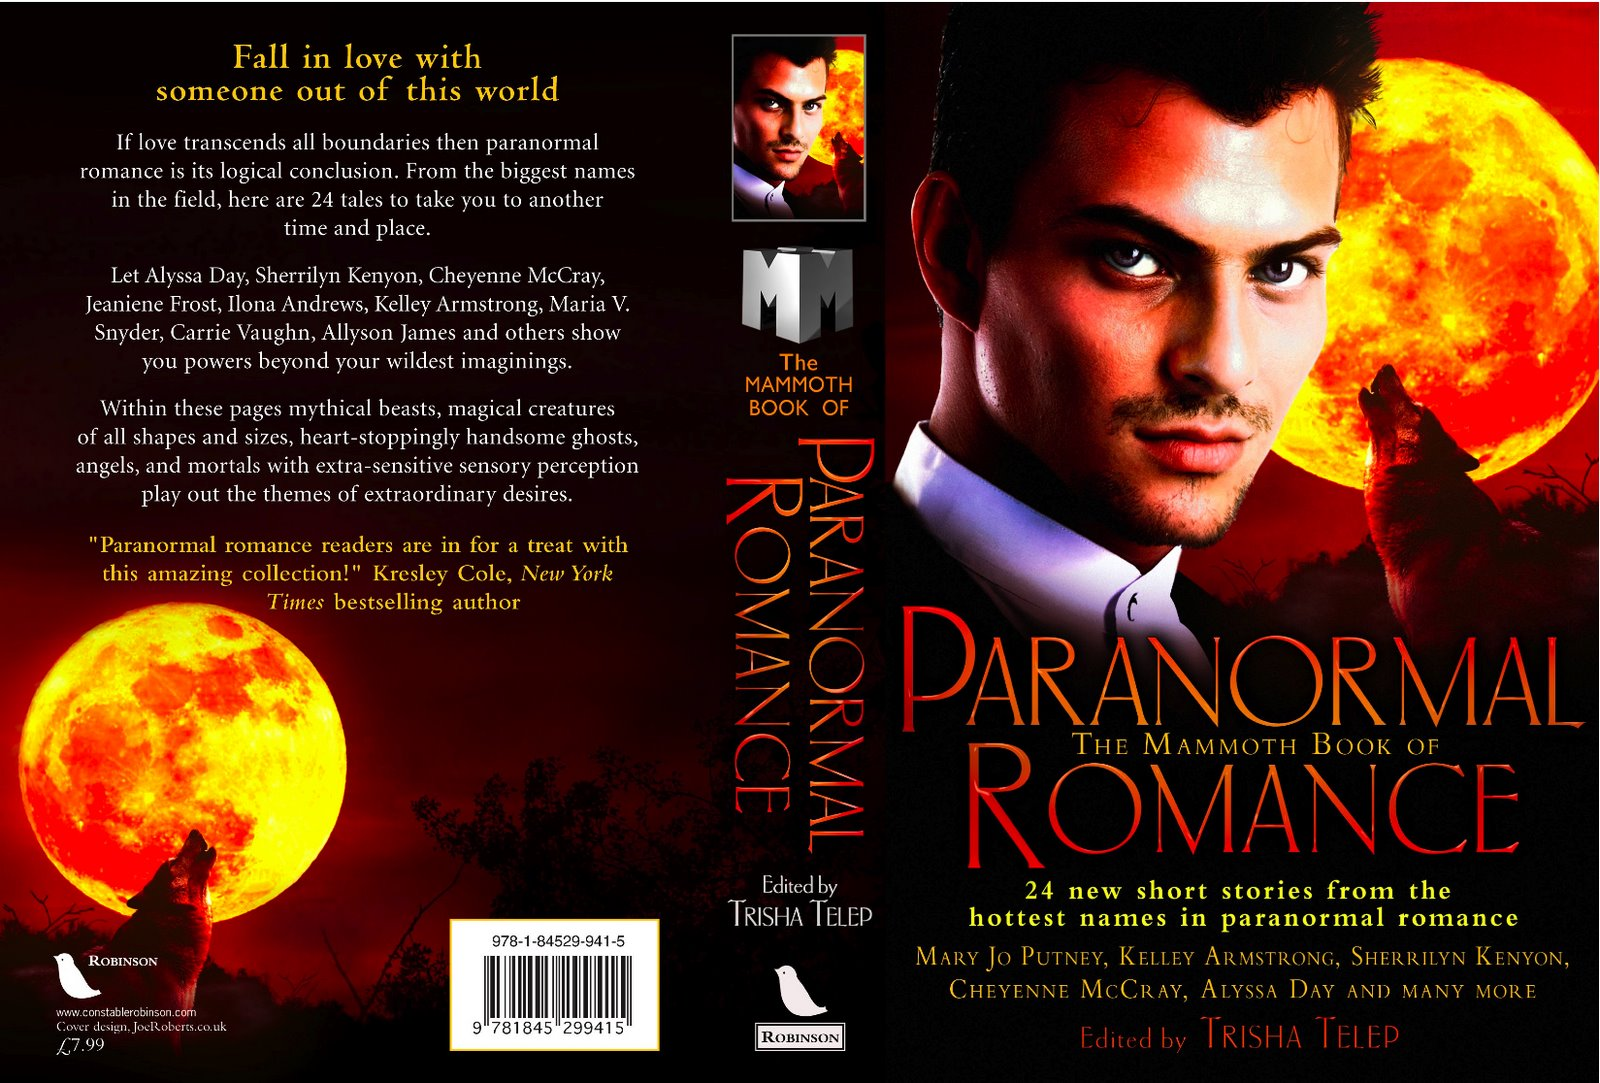 [MBOparanormalromancecover+jpg]